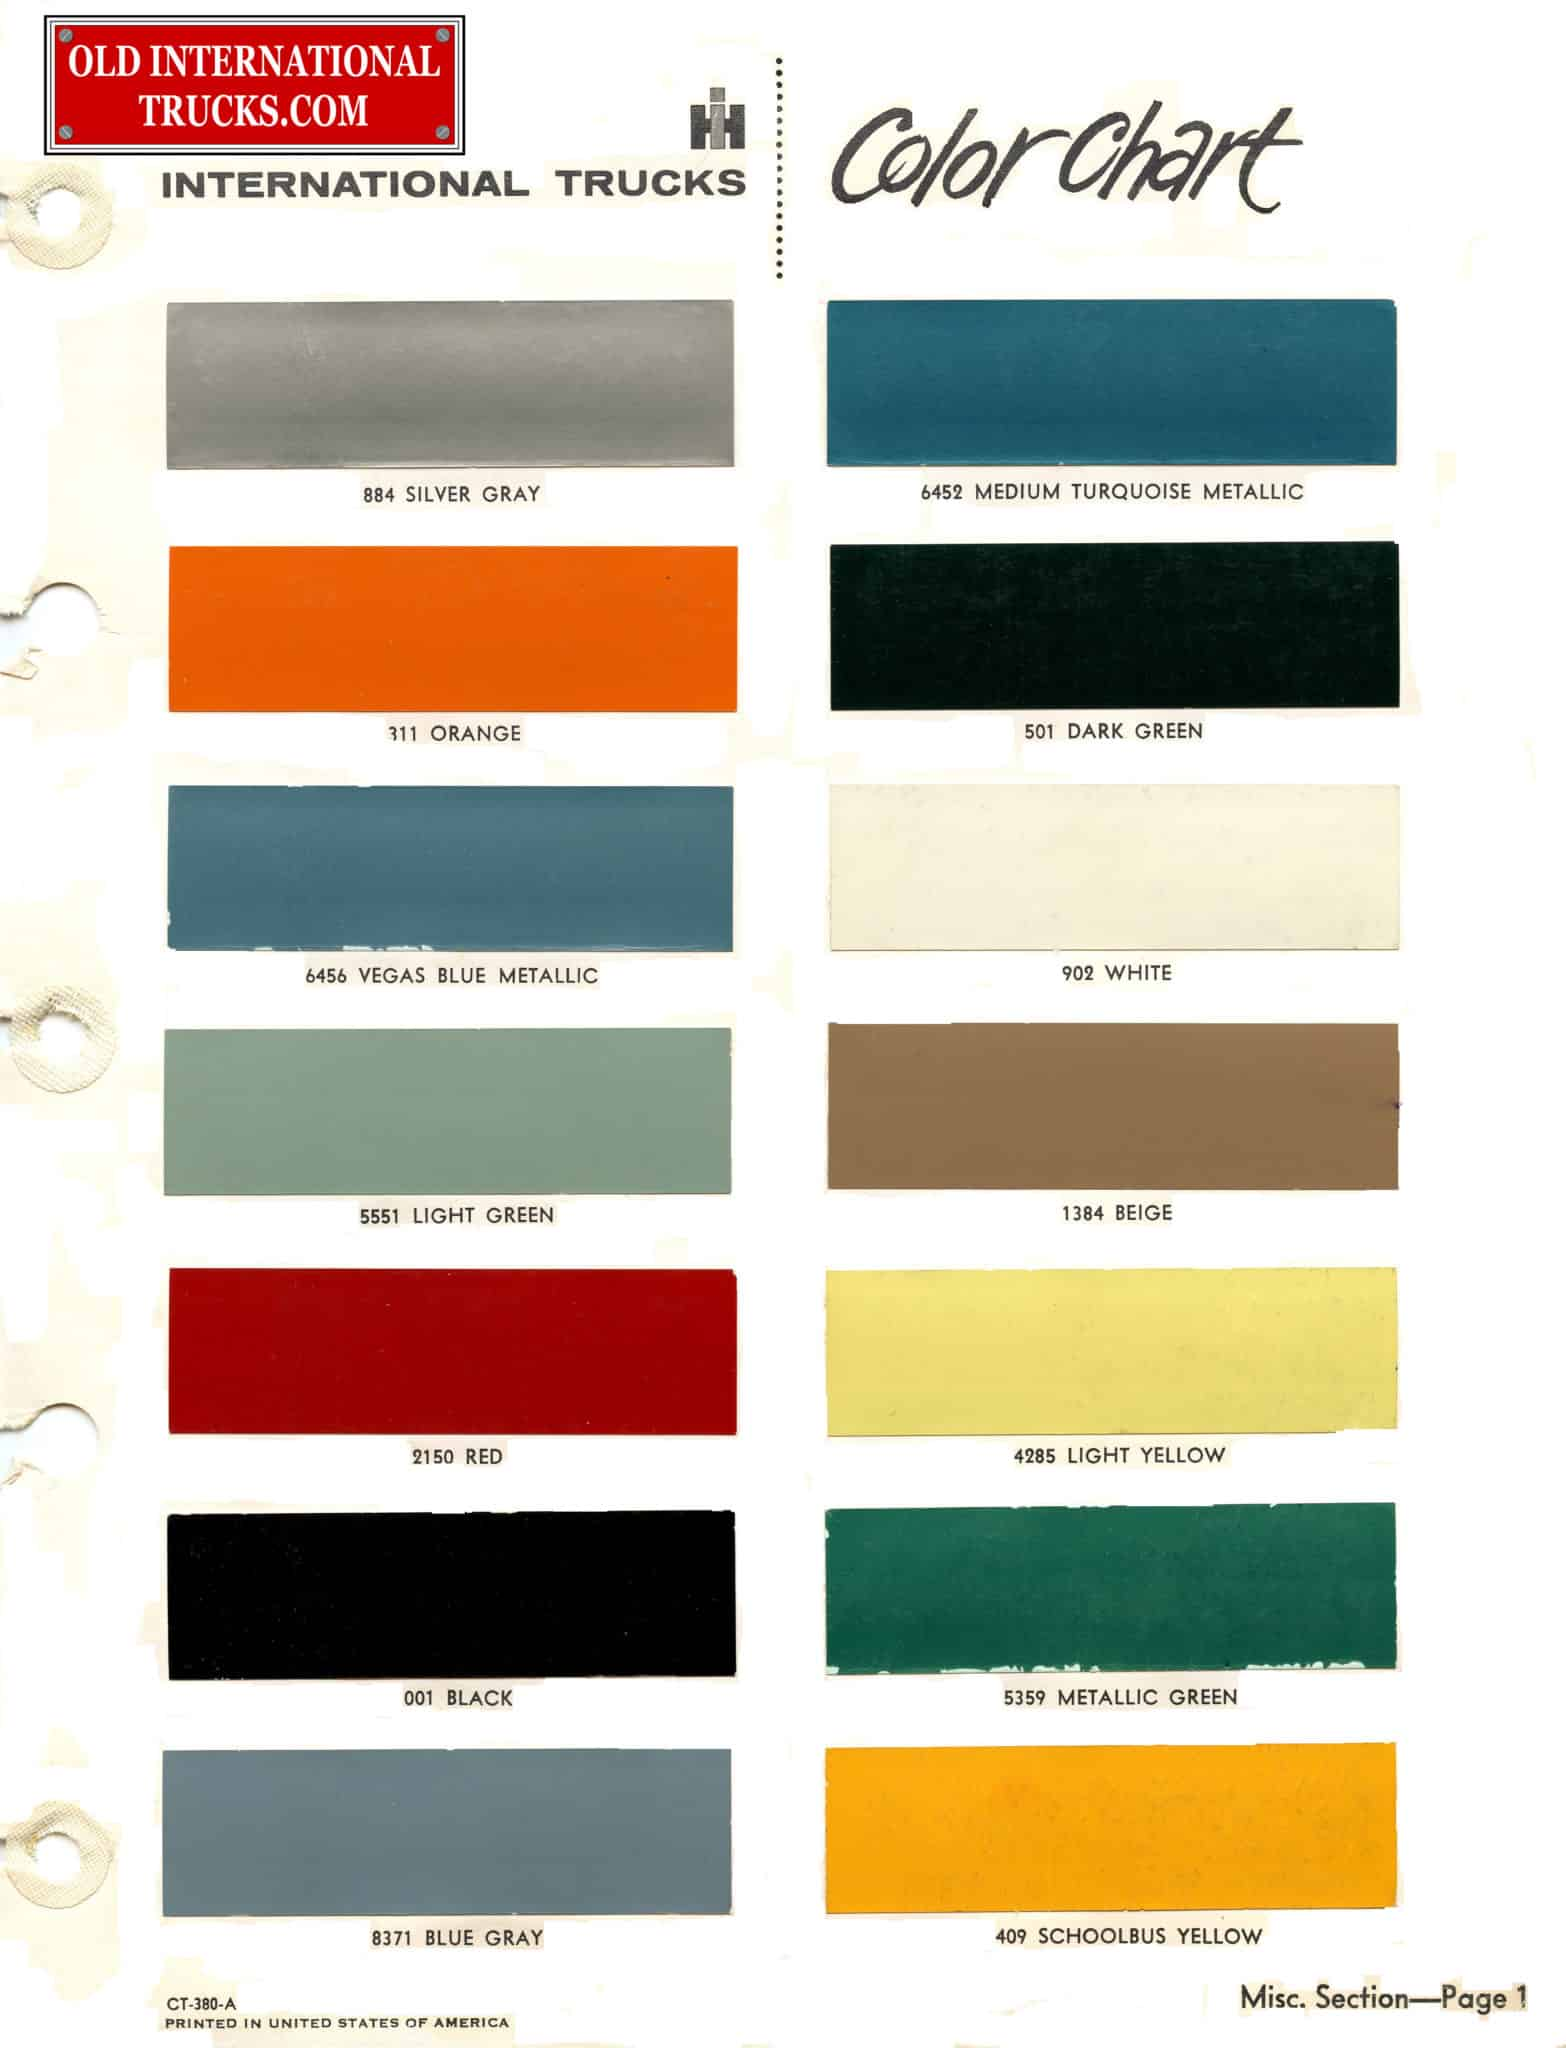 Colour charts old international truck parts 1963 color chart geenschuldenfo Image collections